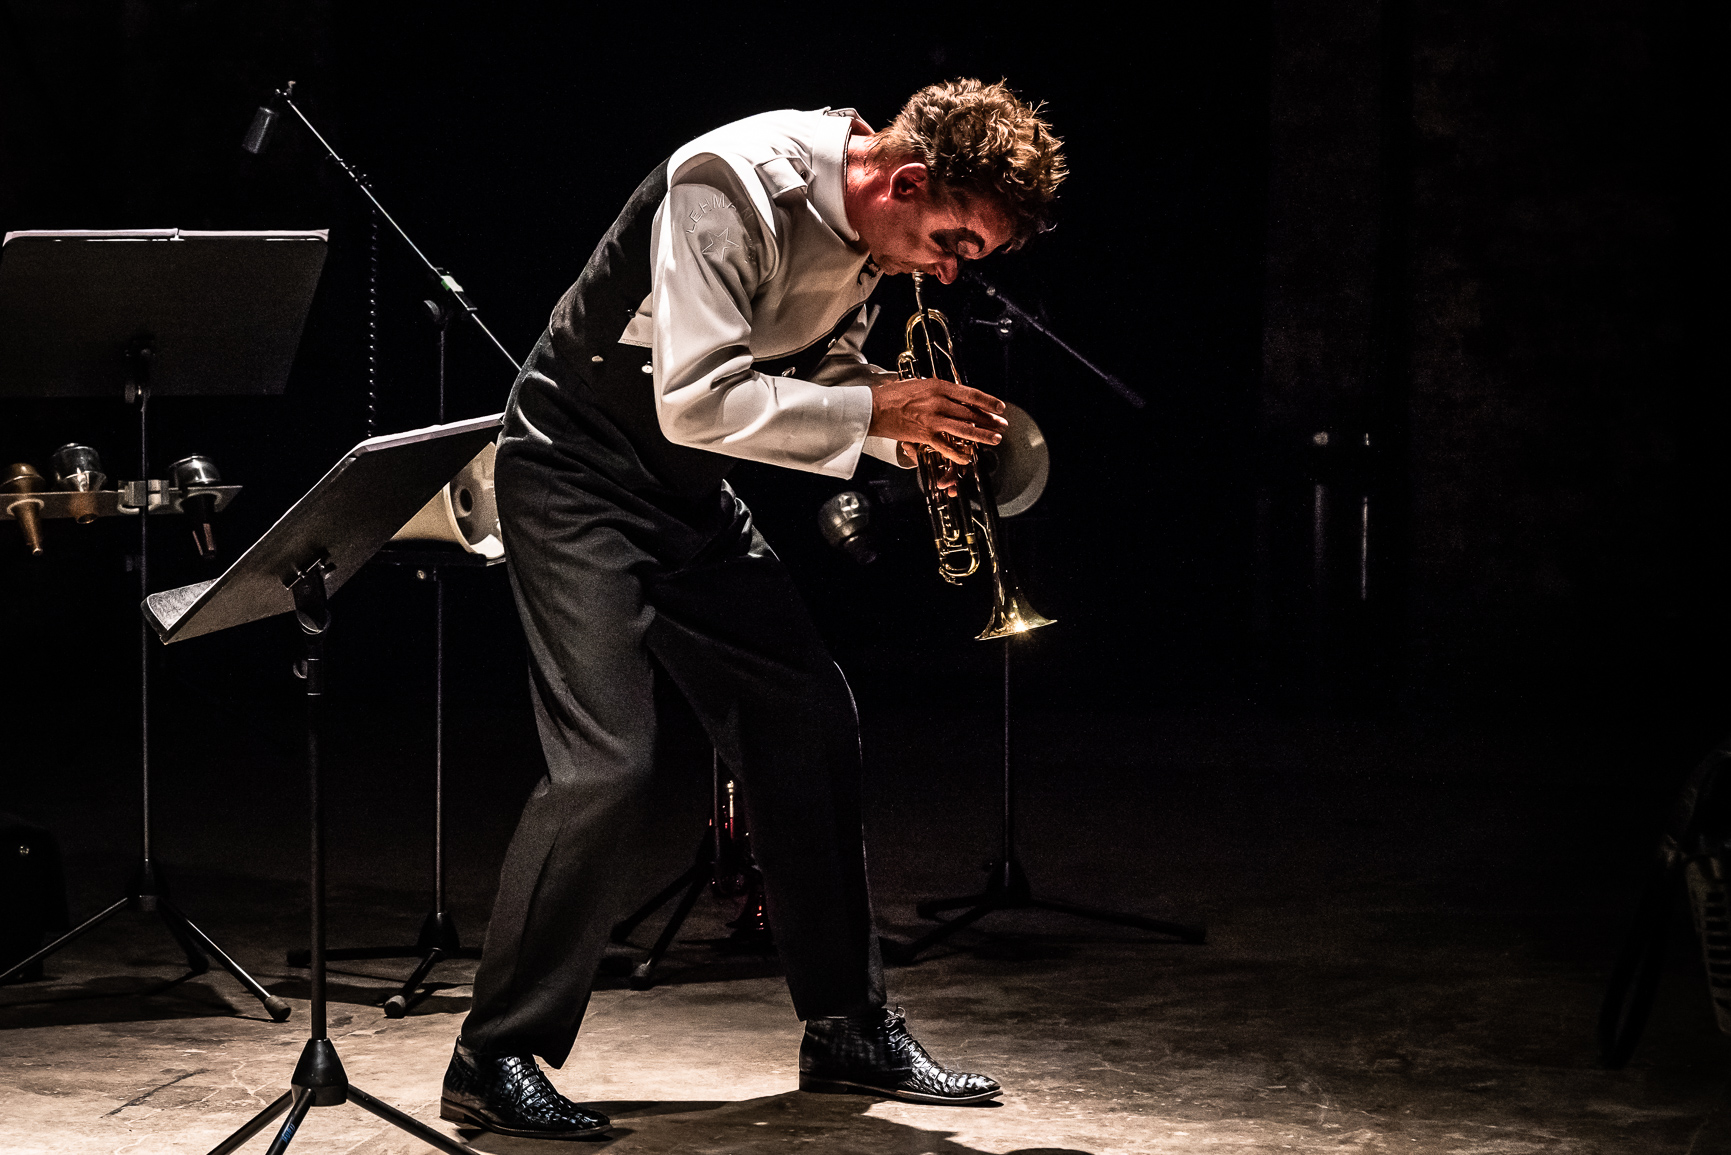 Marco Blaauw playing trumpet directed to the bottom